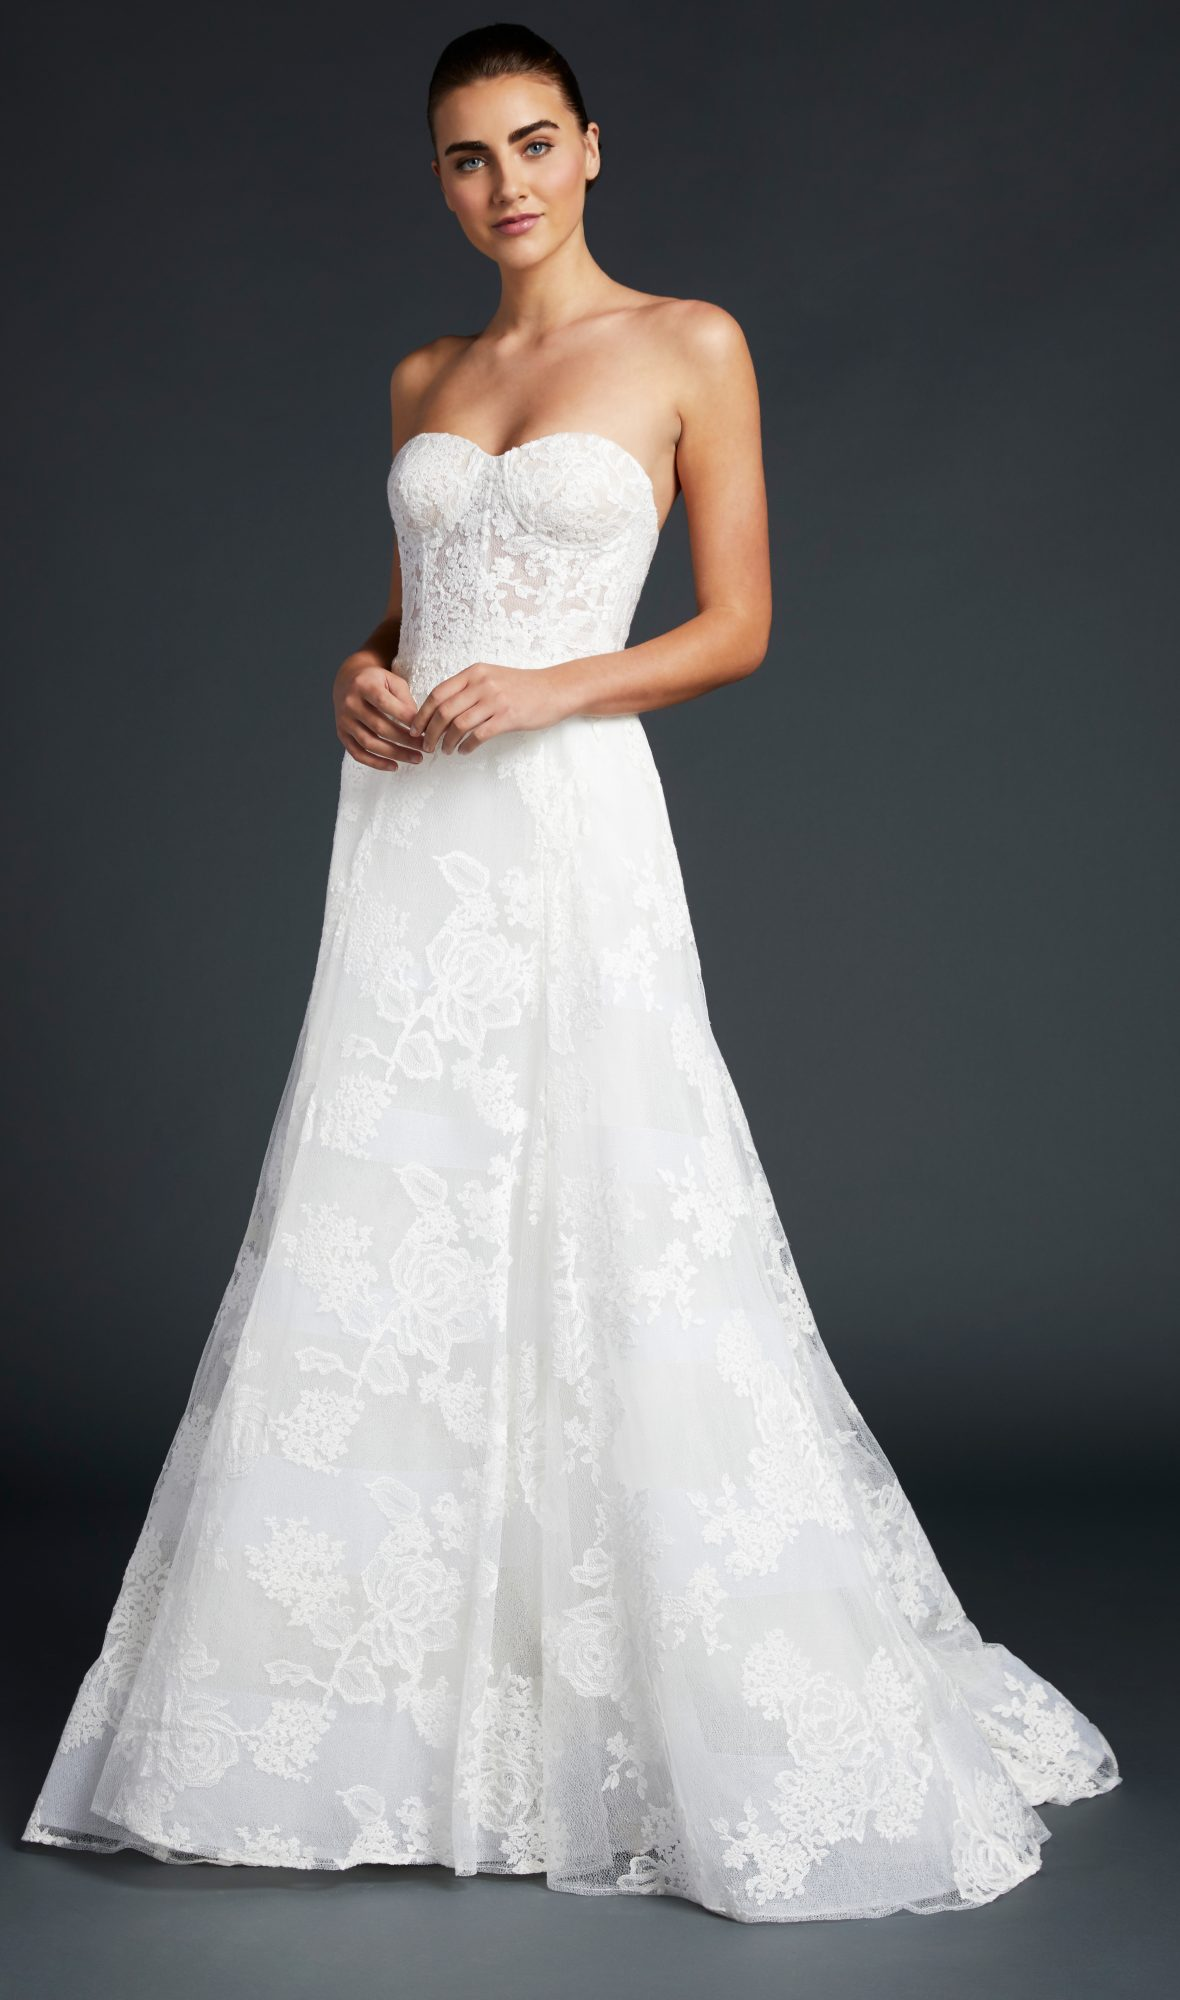 blue willow wedding dress strapless lace trumpet